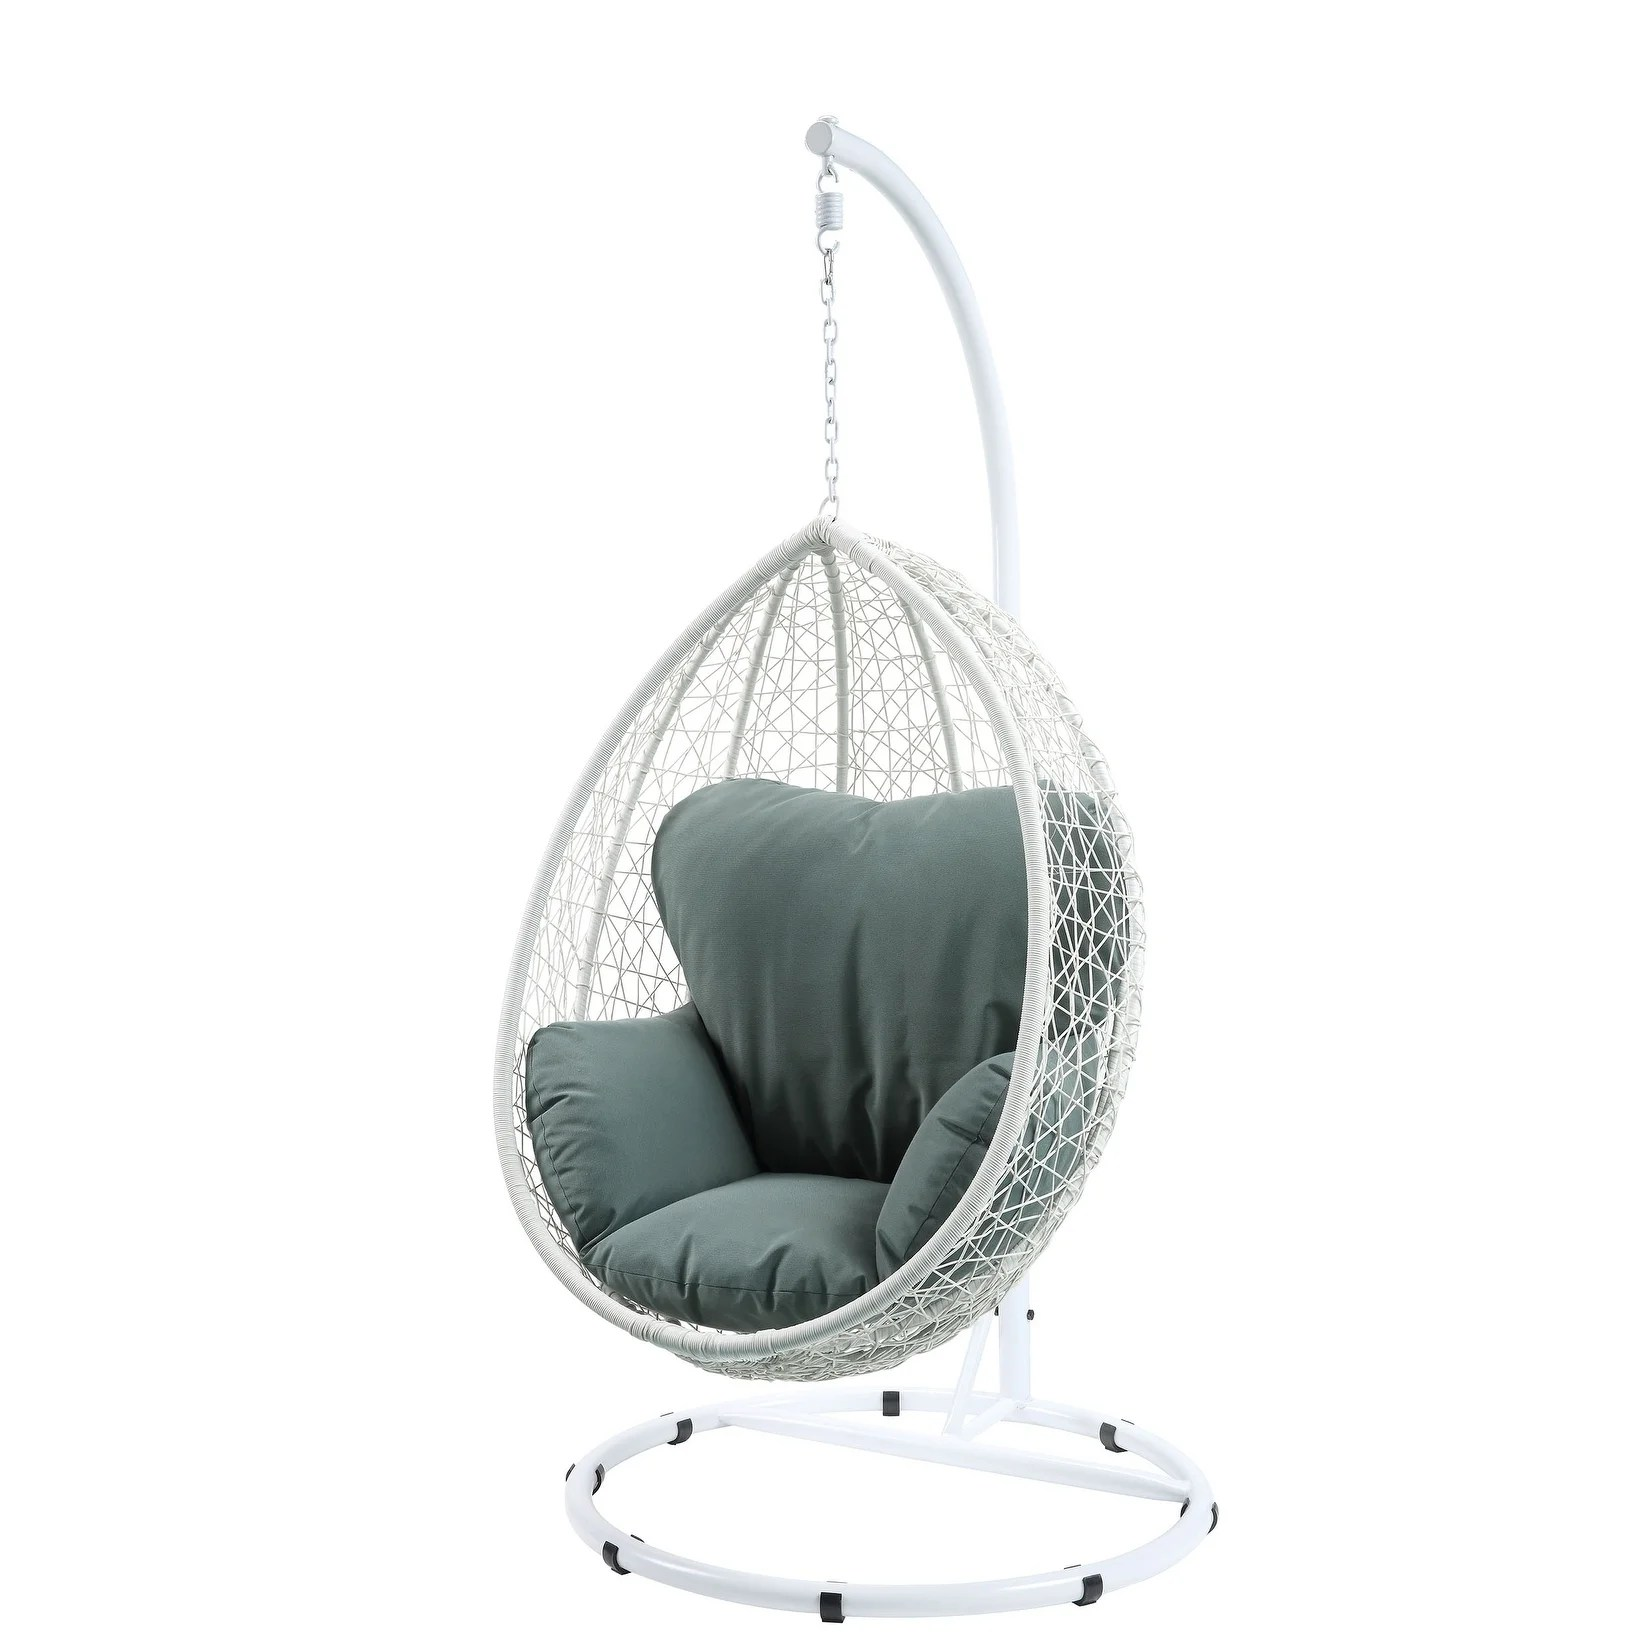 Swing Chair Stand Acme Simona Patio Swing Chair With Stand Green Fabric White Wicker